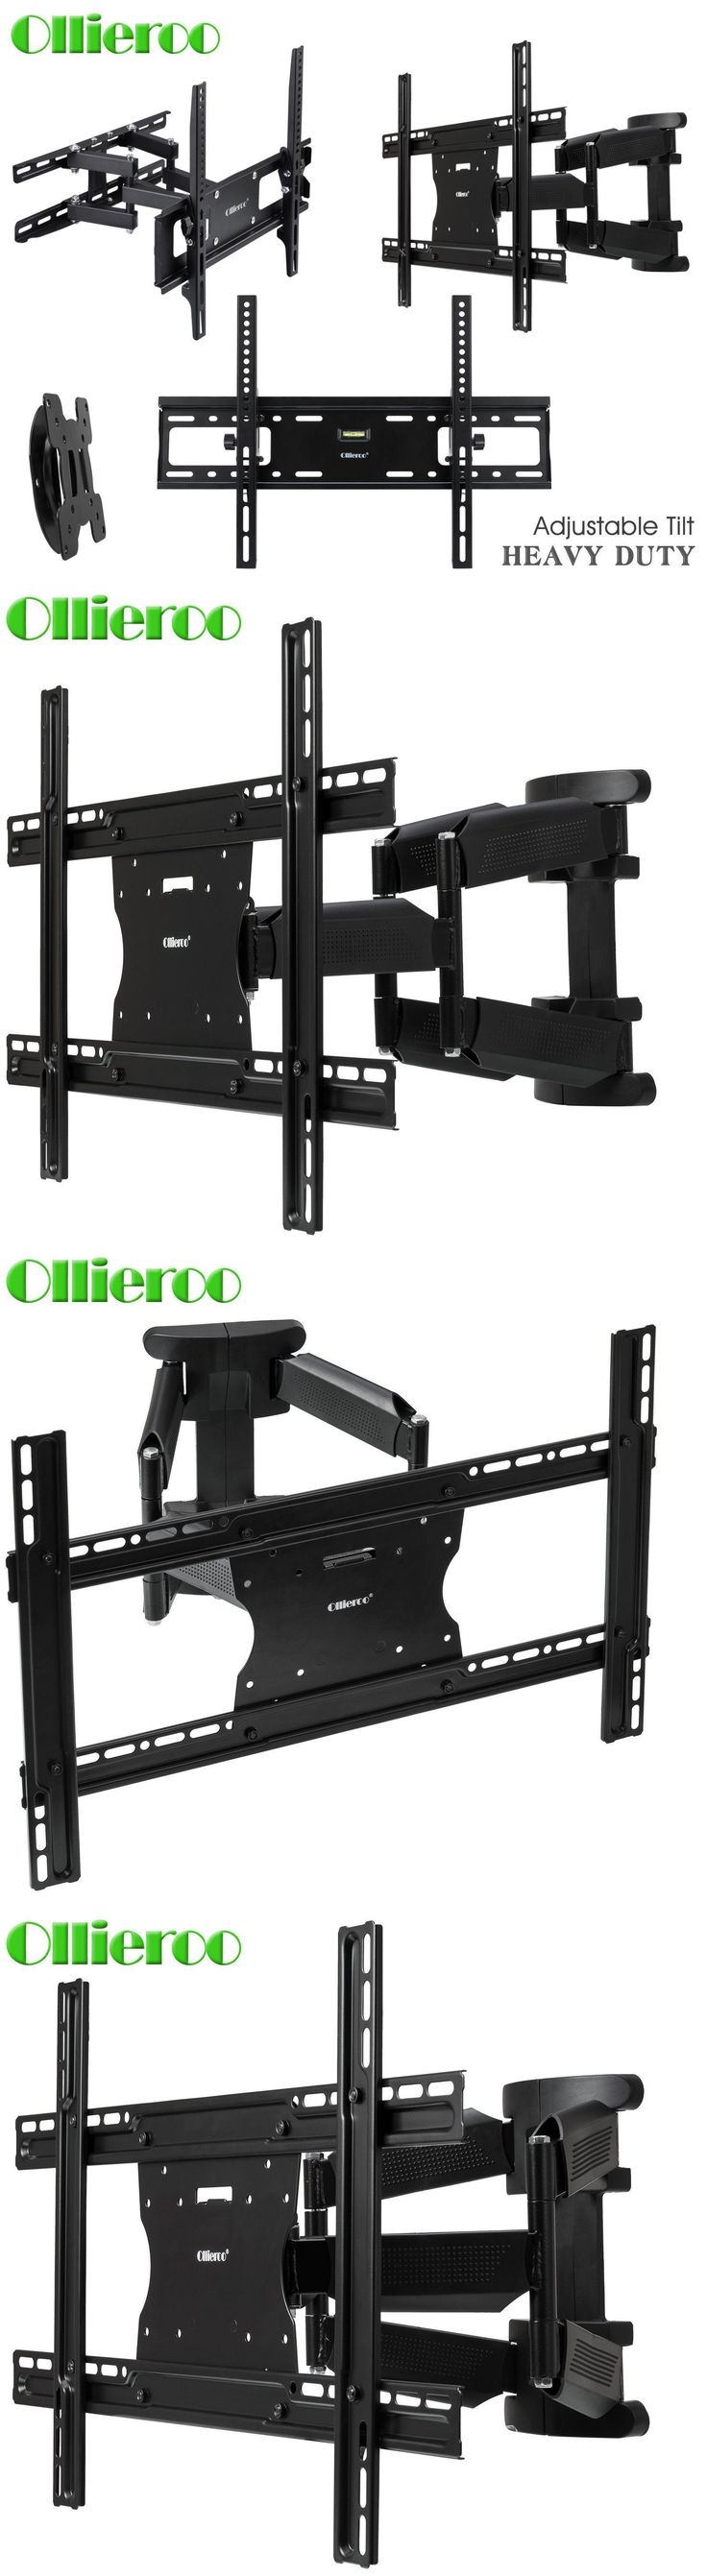 TV Mounts and Brackets: Fixed, Tilt, Or Full Motion Tv Wall Mount Bracket 32 40 42 46 50 55 60 65 70 75 -> BUY IT NOW ONLY: $39.89 on eBay!